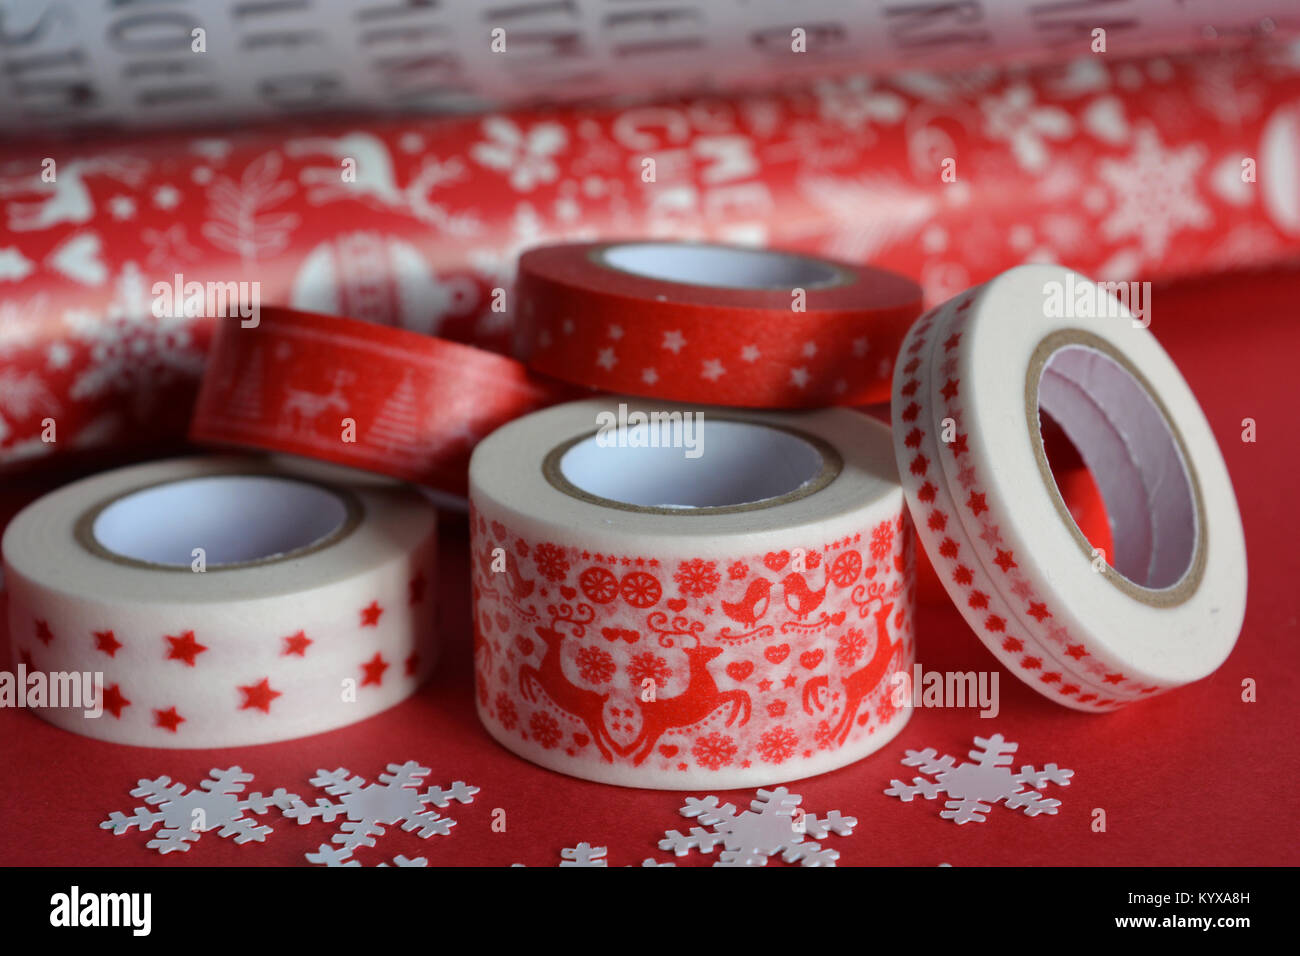 Spirit Paper Stockfotos & Spirit Paper Bilder - Alamy